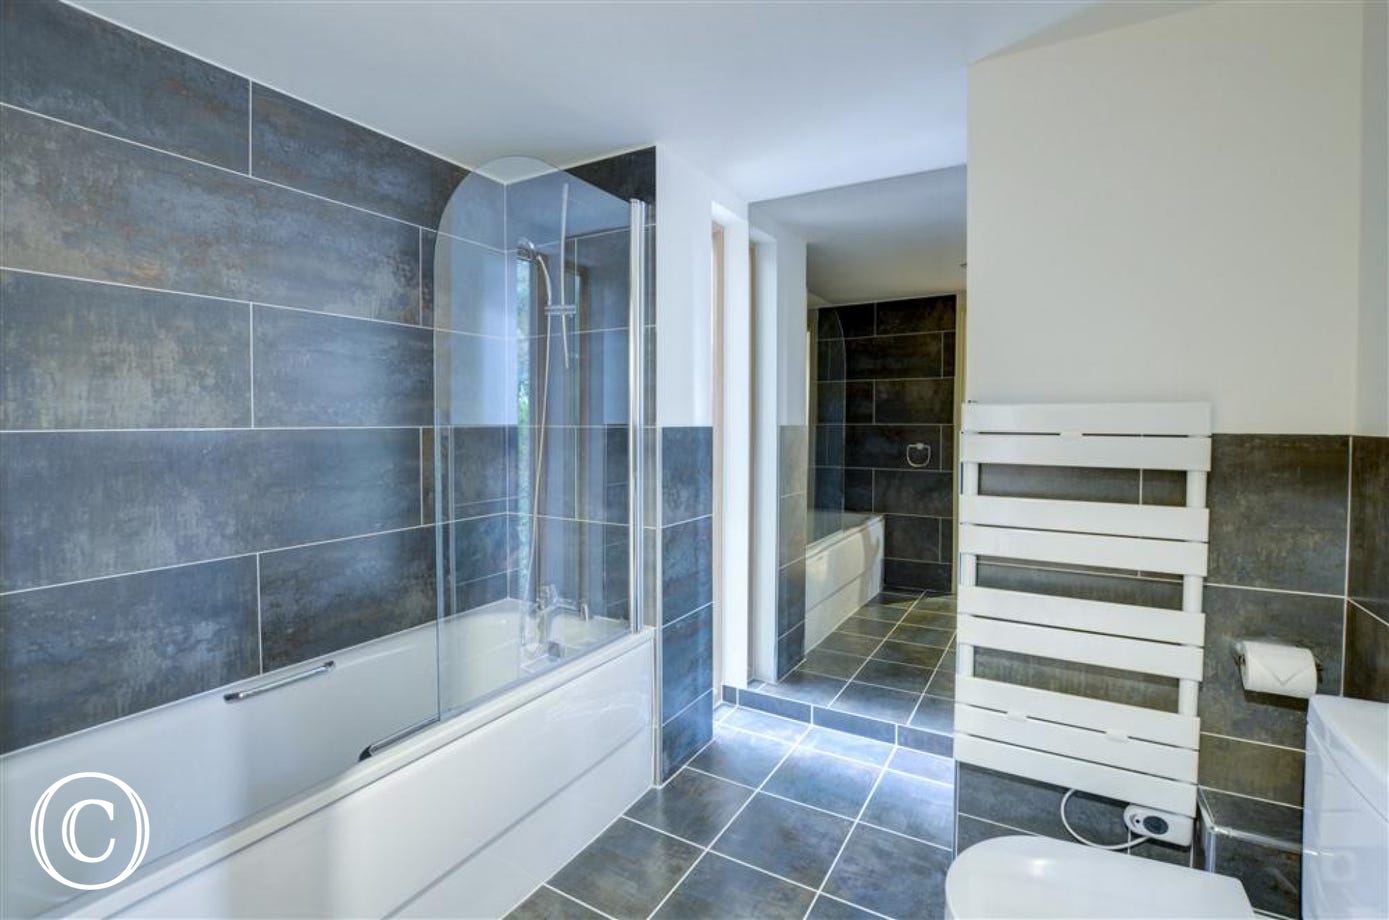 The stunning contemporay bathroom with stylish towel rail